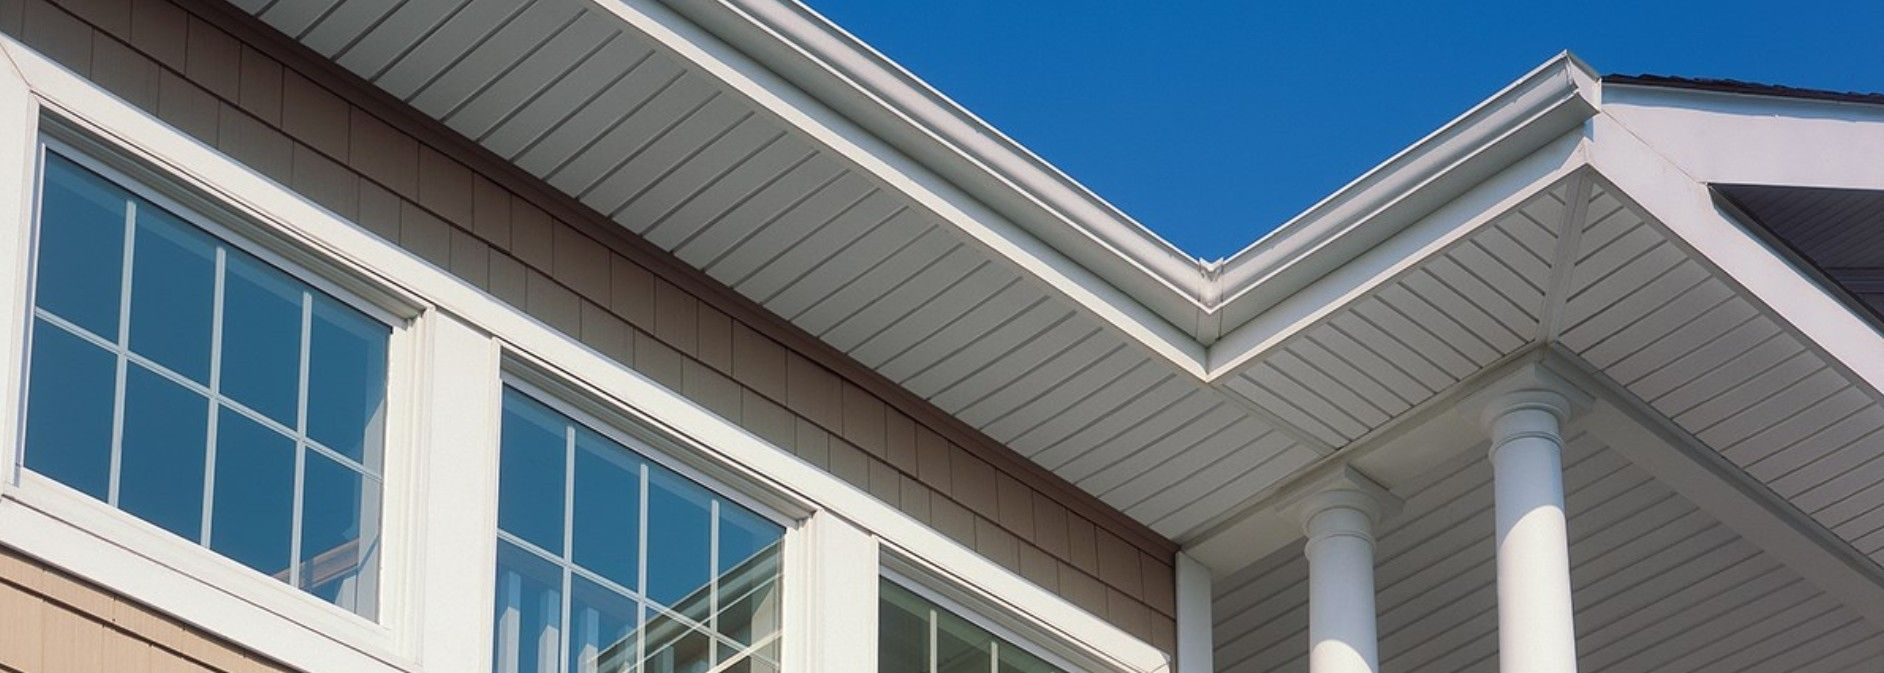 Vinyl Soffits Provide The Air Intake Needed For Proper Air Flow In Attics And For Controlled Temperatures Indoors Soffits Siding Vinyl Soffit Exterior Siding